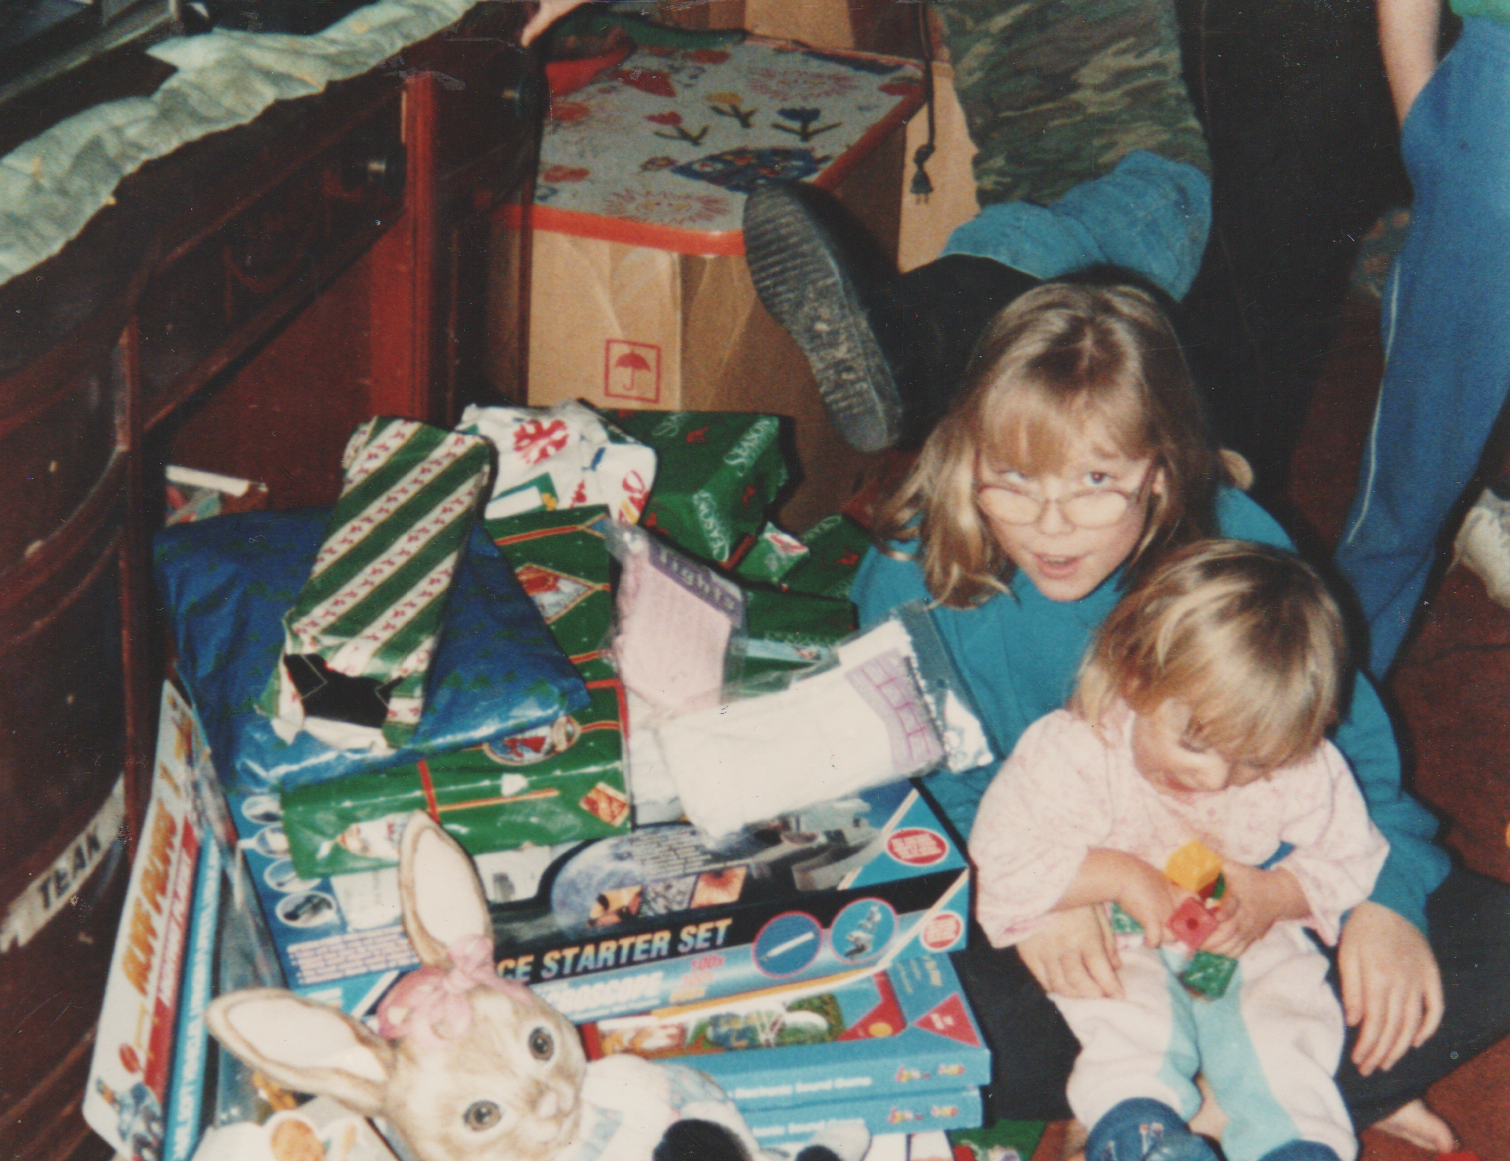 1991-12-25 - Christmas of 1991 - Joey, Crystal, Katie, Presents, Piano, Toys, 3pics-2.png